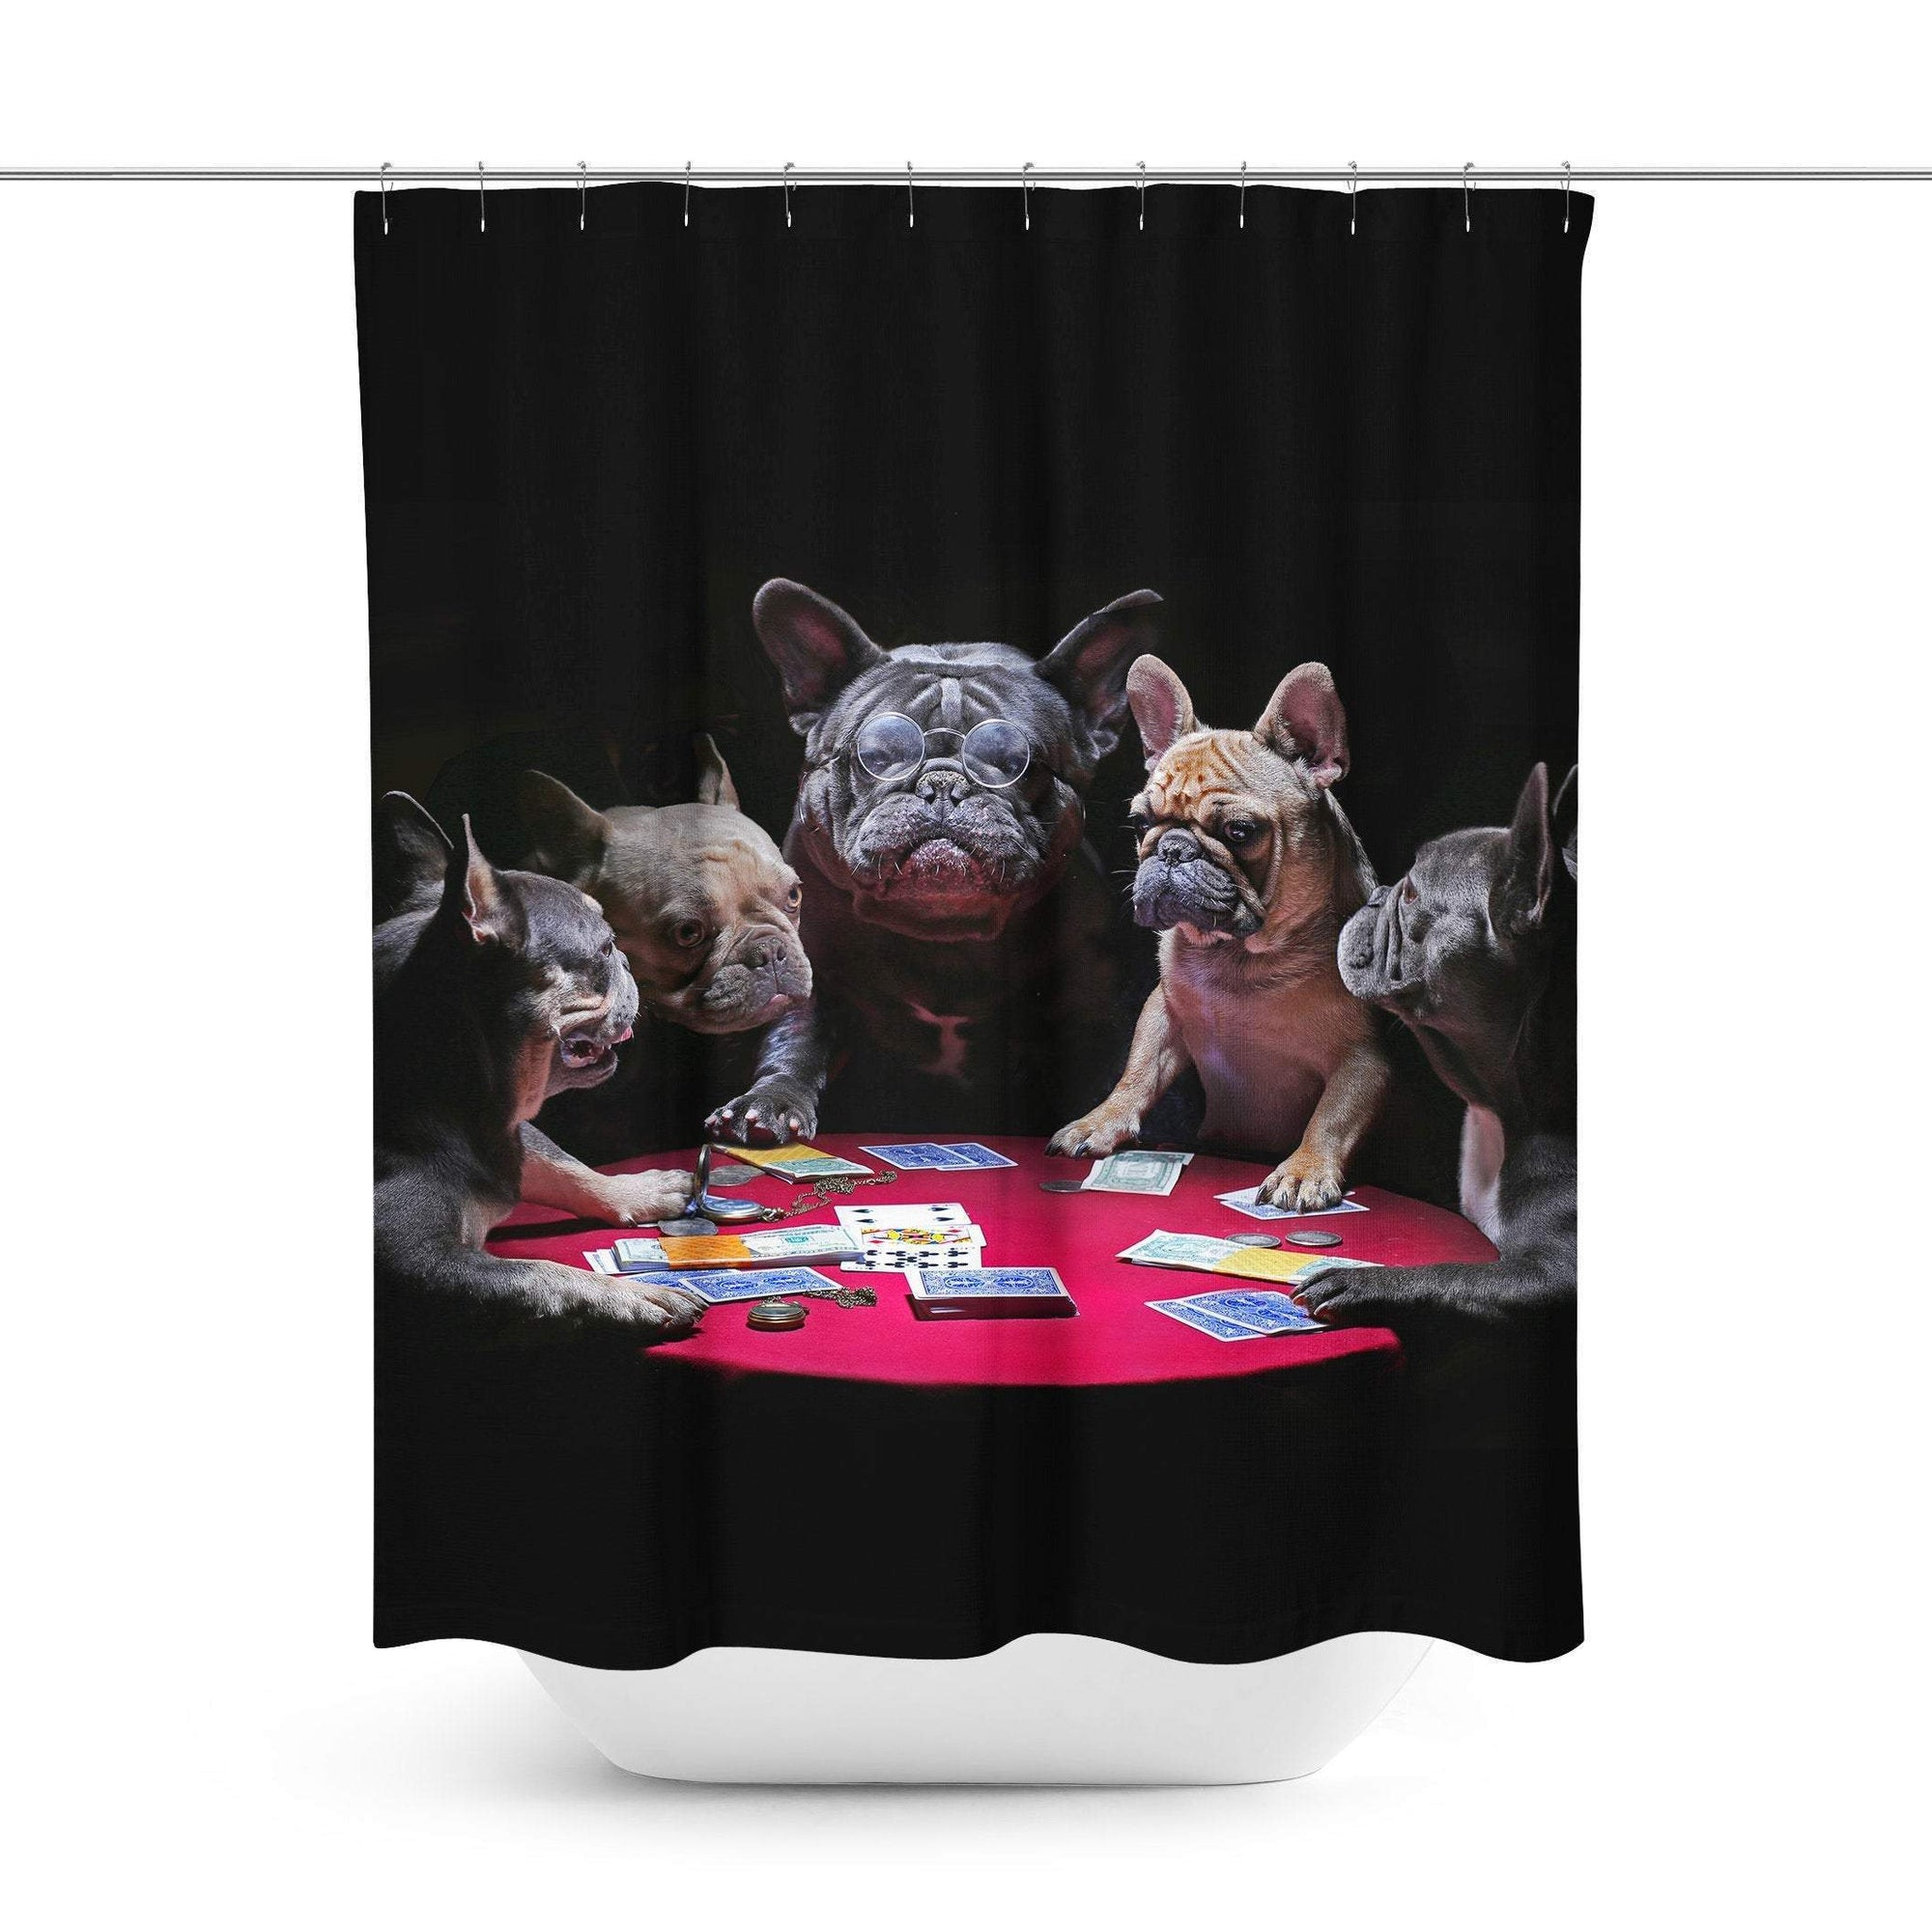 Dog Shower Curtain - Shower Curtains - W.FRANCIS